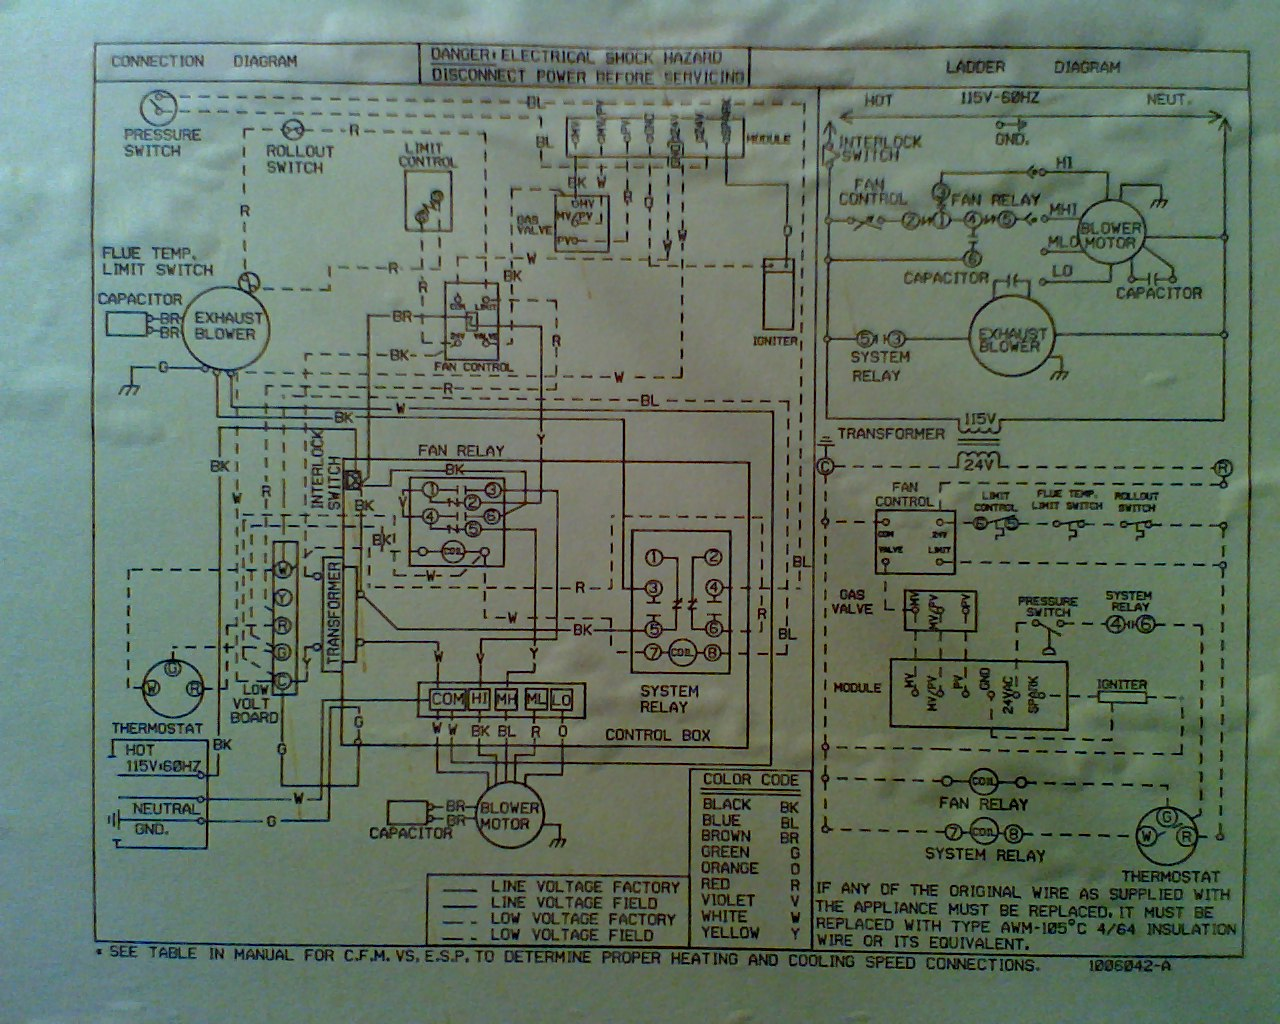 2009 11 20_231603_1120091711a air conditioner y wire grihon com ac, coolers & devices tempstar 2200 air conditioner wiring diagram at nearapp.co